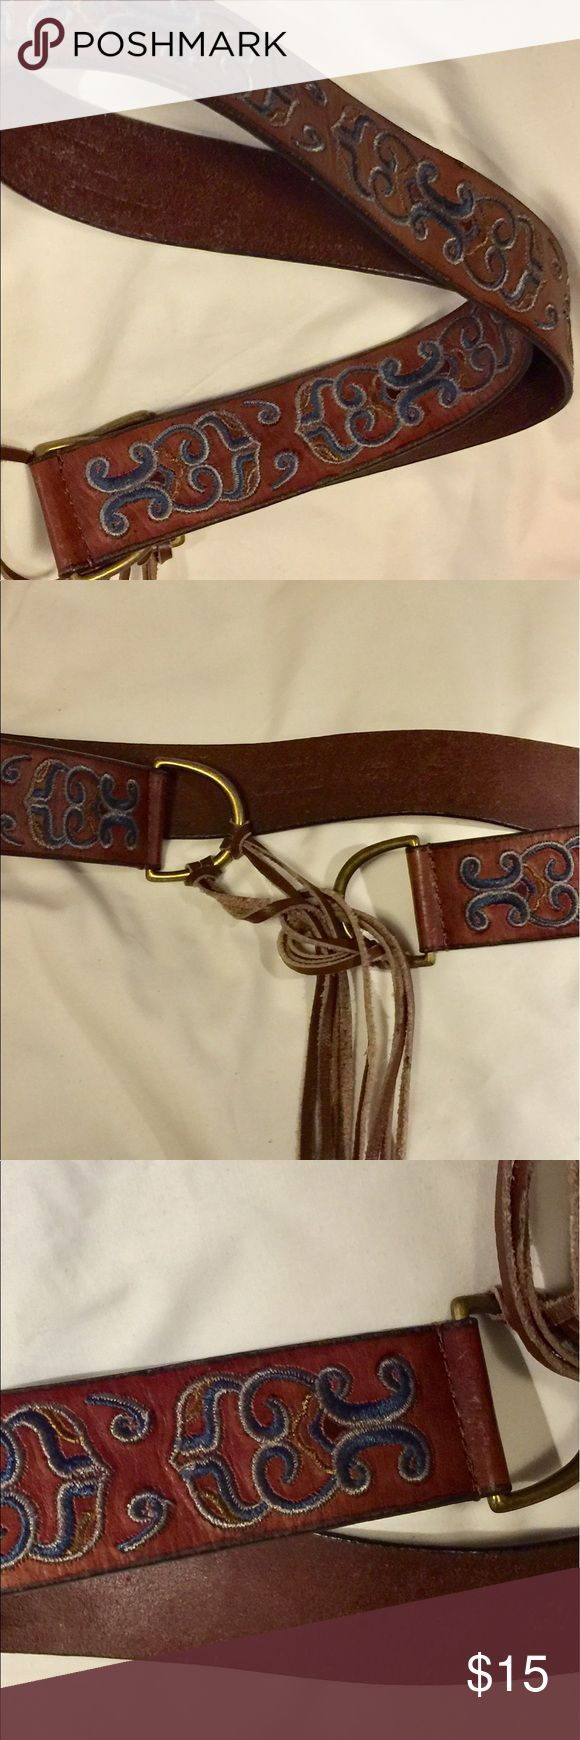 American Eagle Outfitters Embroiled tie belt Beautifully embroidered belt.  It is previously used but is in excellent condition with no rips, stains, etc   Perfect for that Boho outfit your planning on rocking this summer. American Eagle Outfitters Accessories Belts